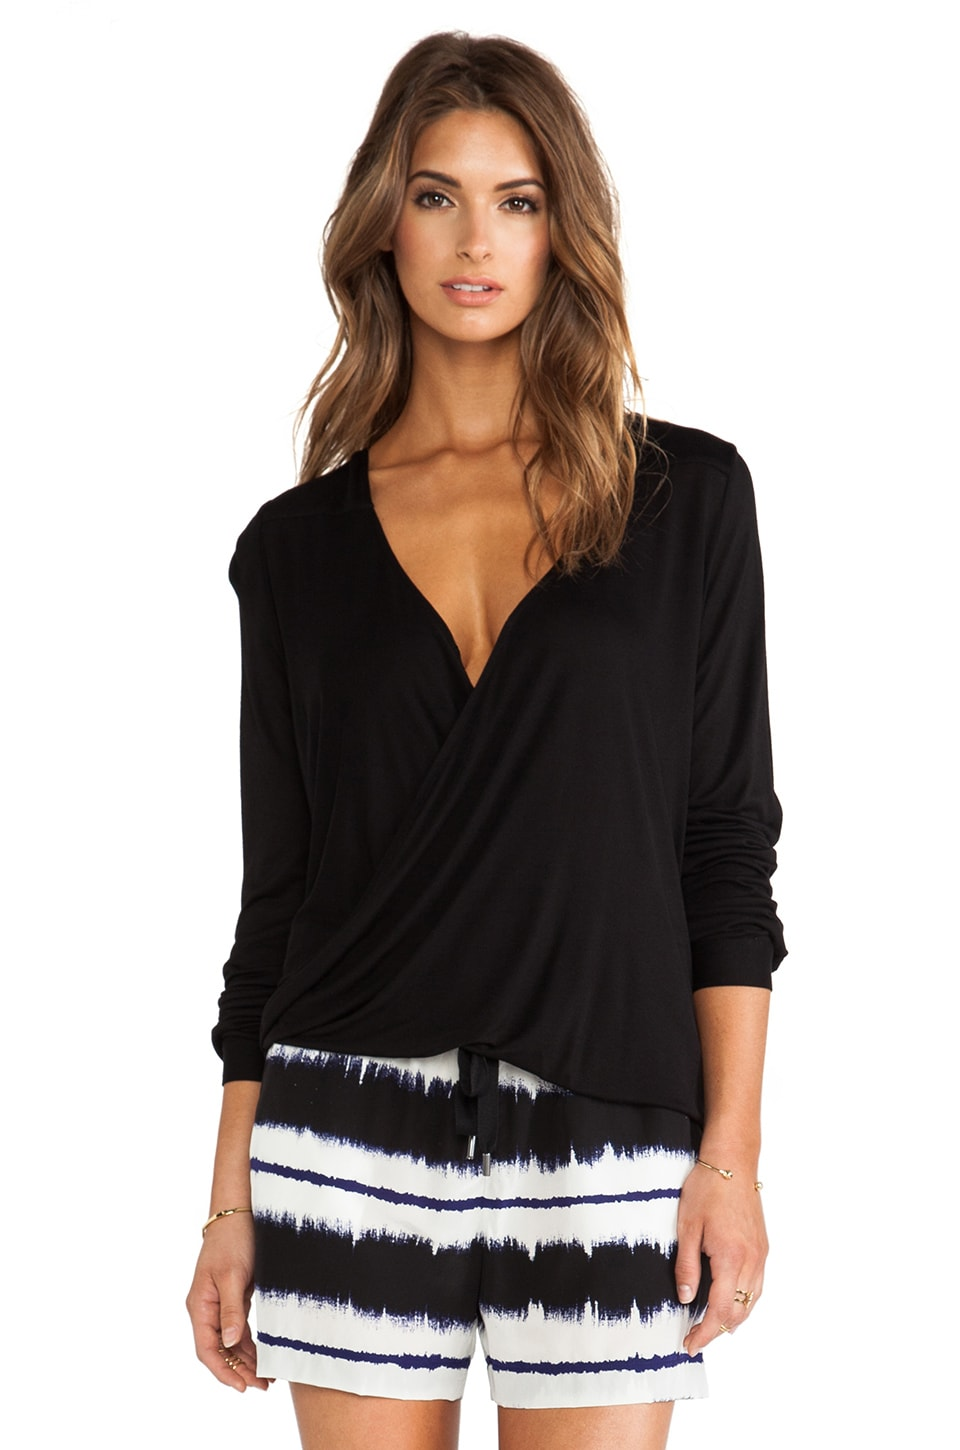 DEREK LAM 10 CROSBY Draped Front Tee in Black